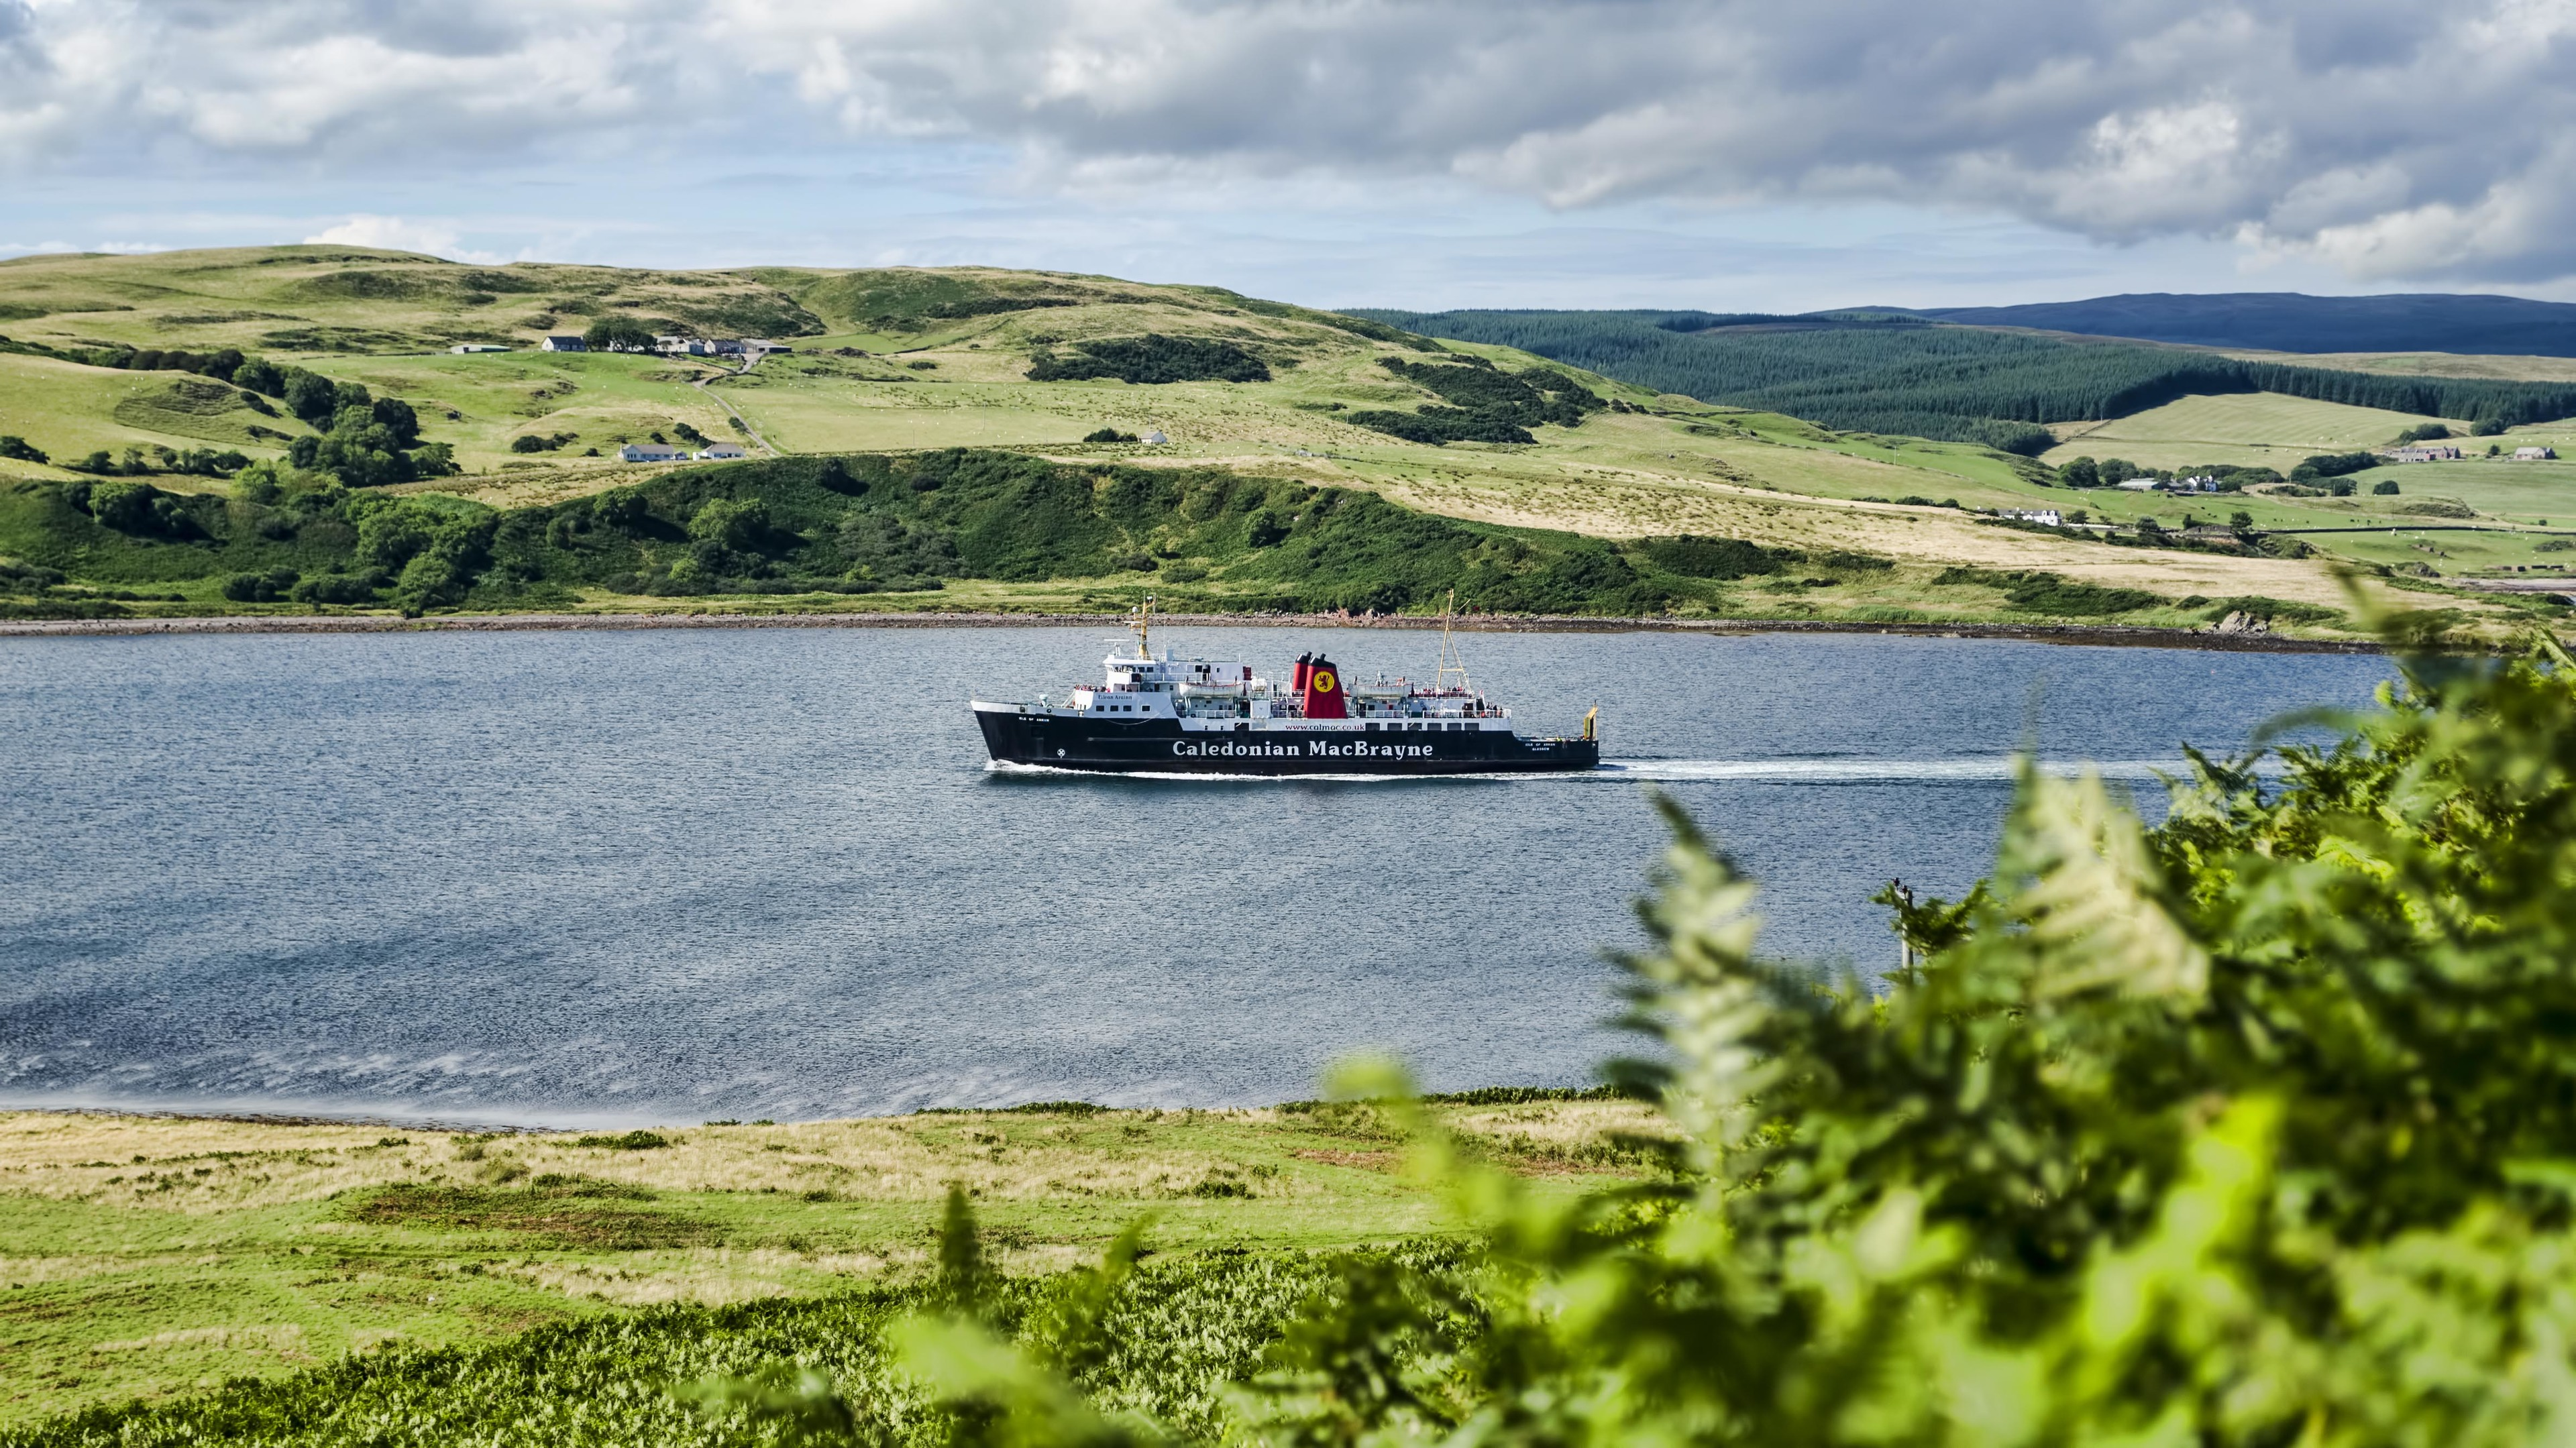 The CalMac service resumes its summer operations today